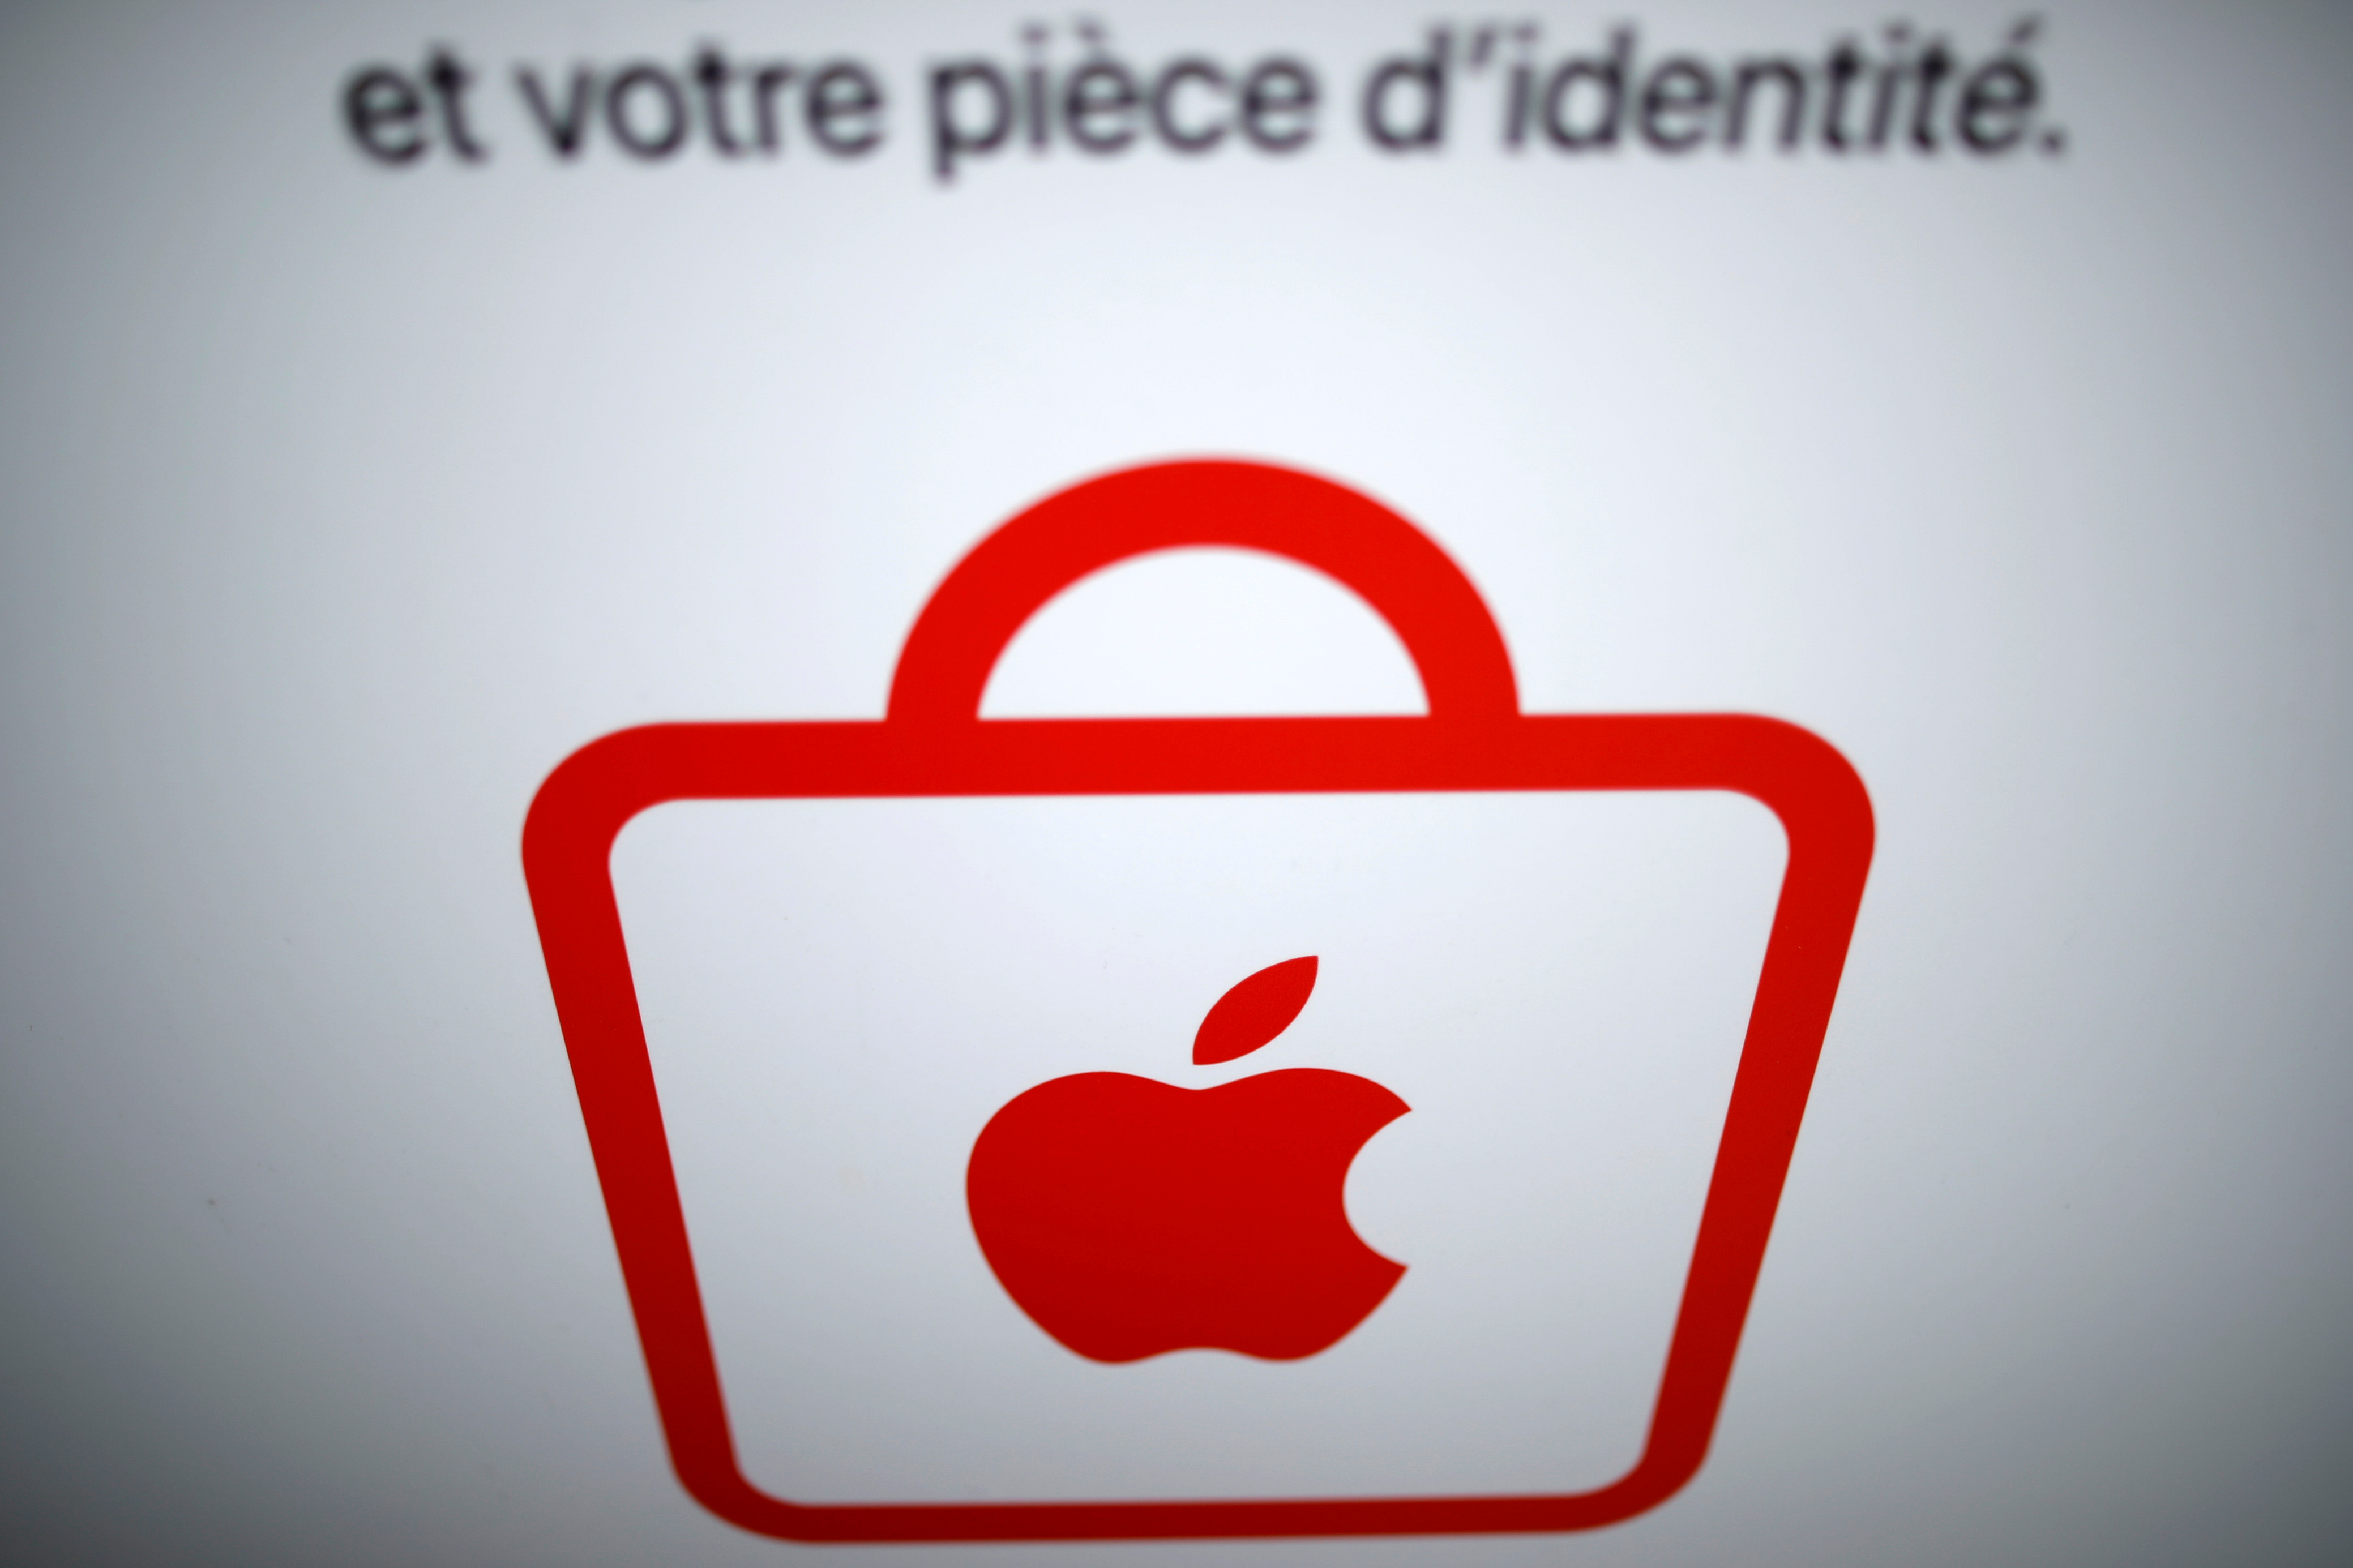 Apple logo is seen on an Apple store in Paris, France, March 17, 2021. REUTERS/Gonzalo Fuentes